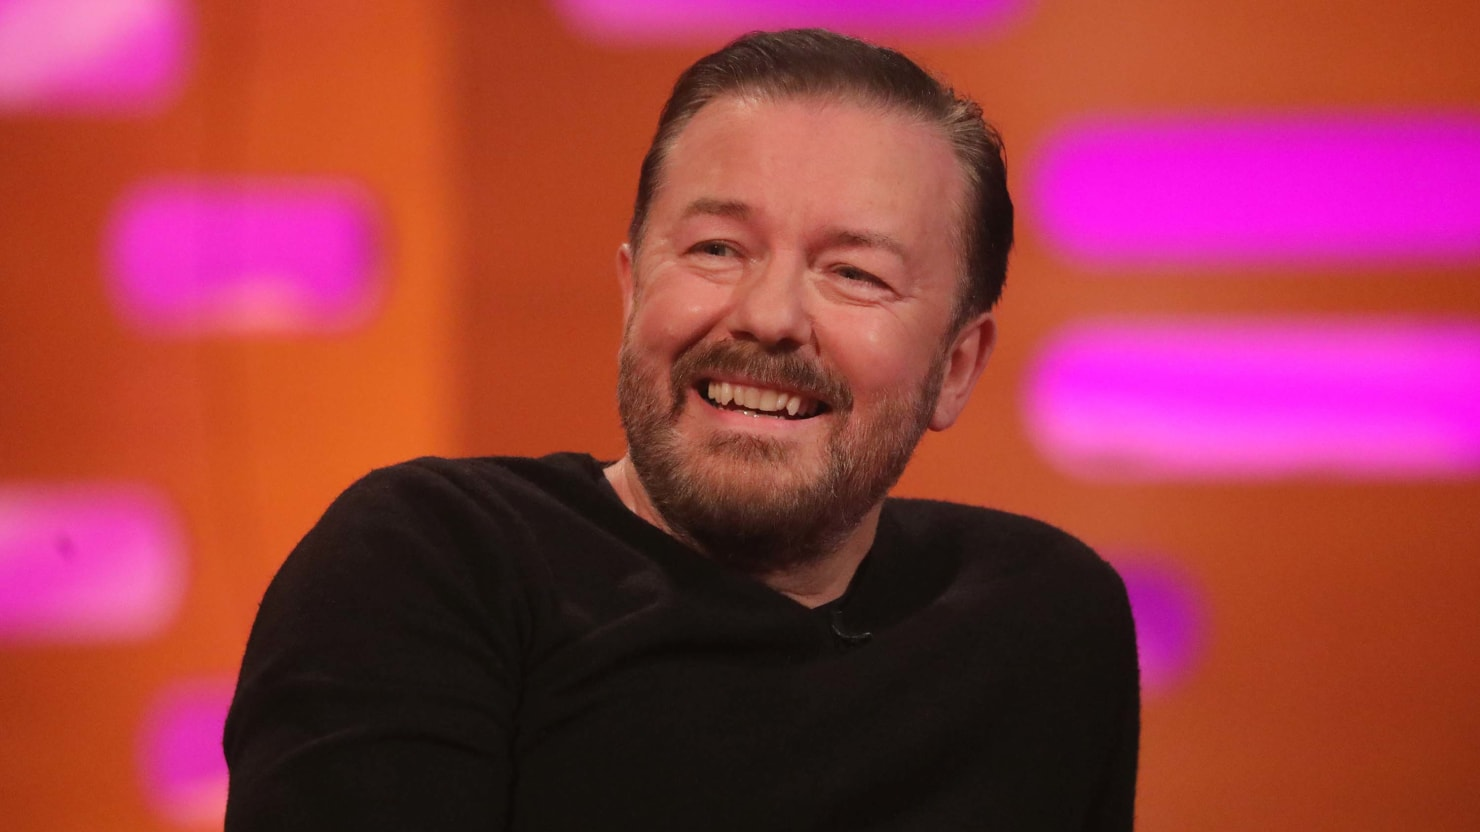 Ricky Gervais: I Don't Care If You Think I'm Transphobic